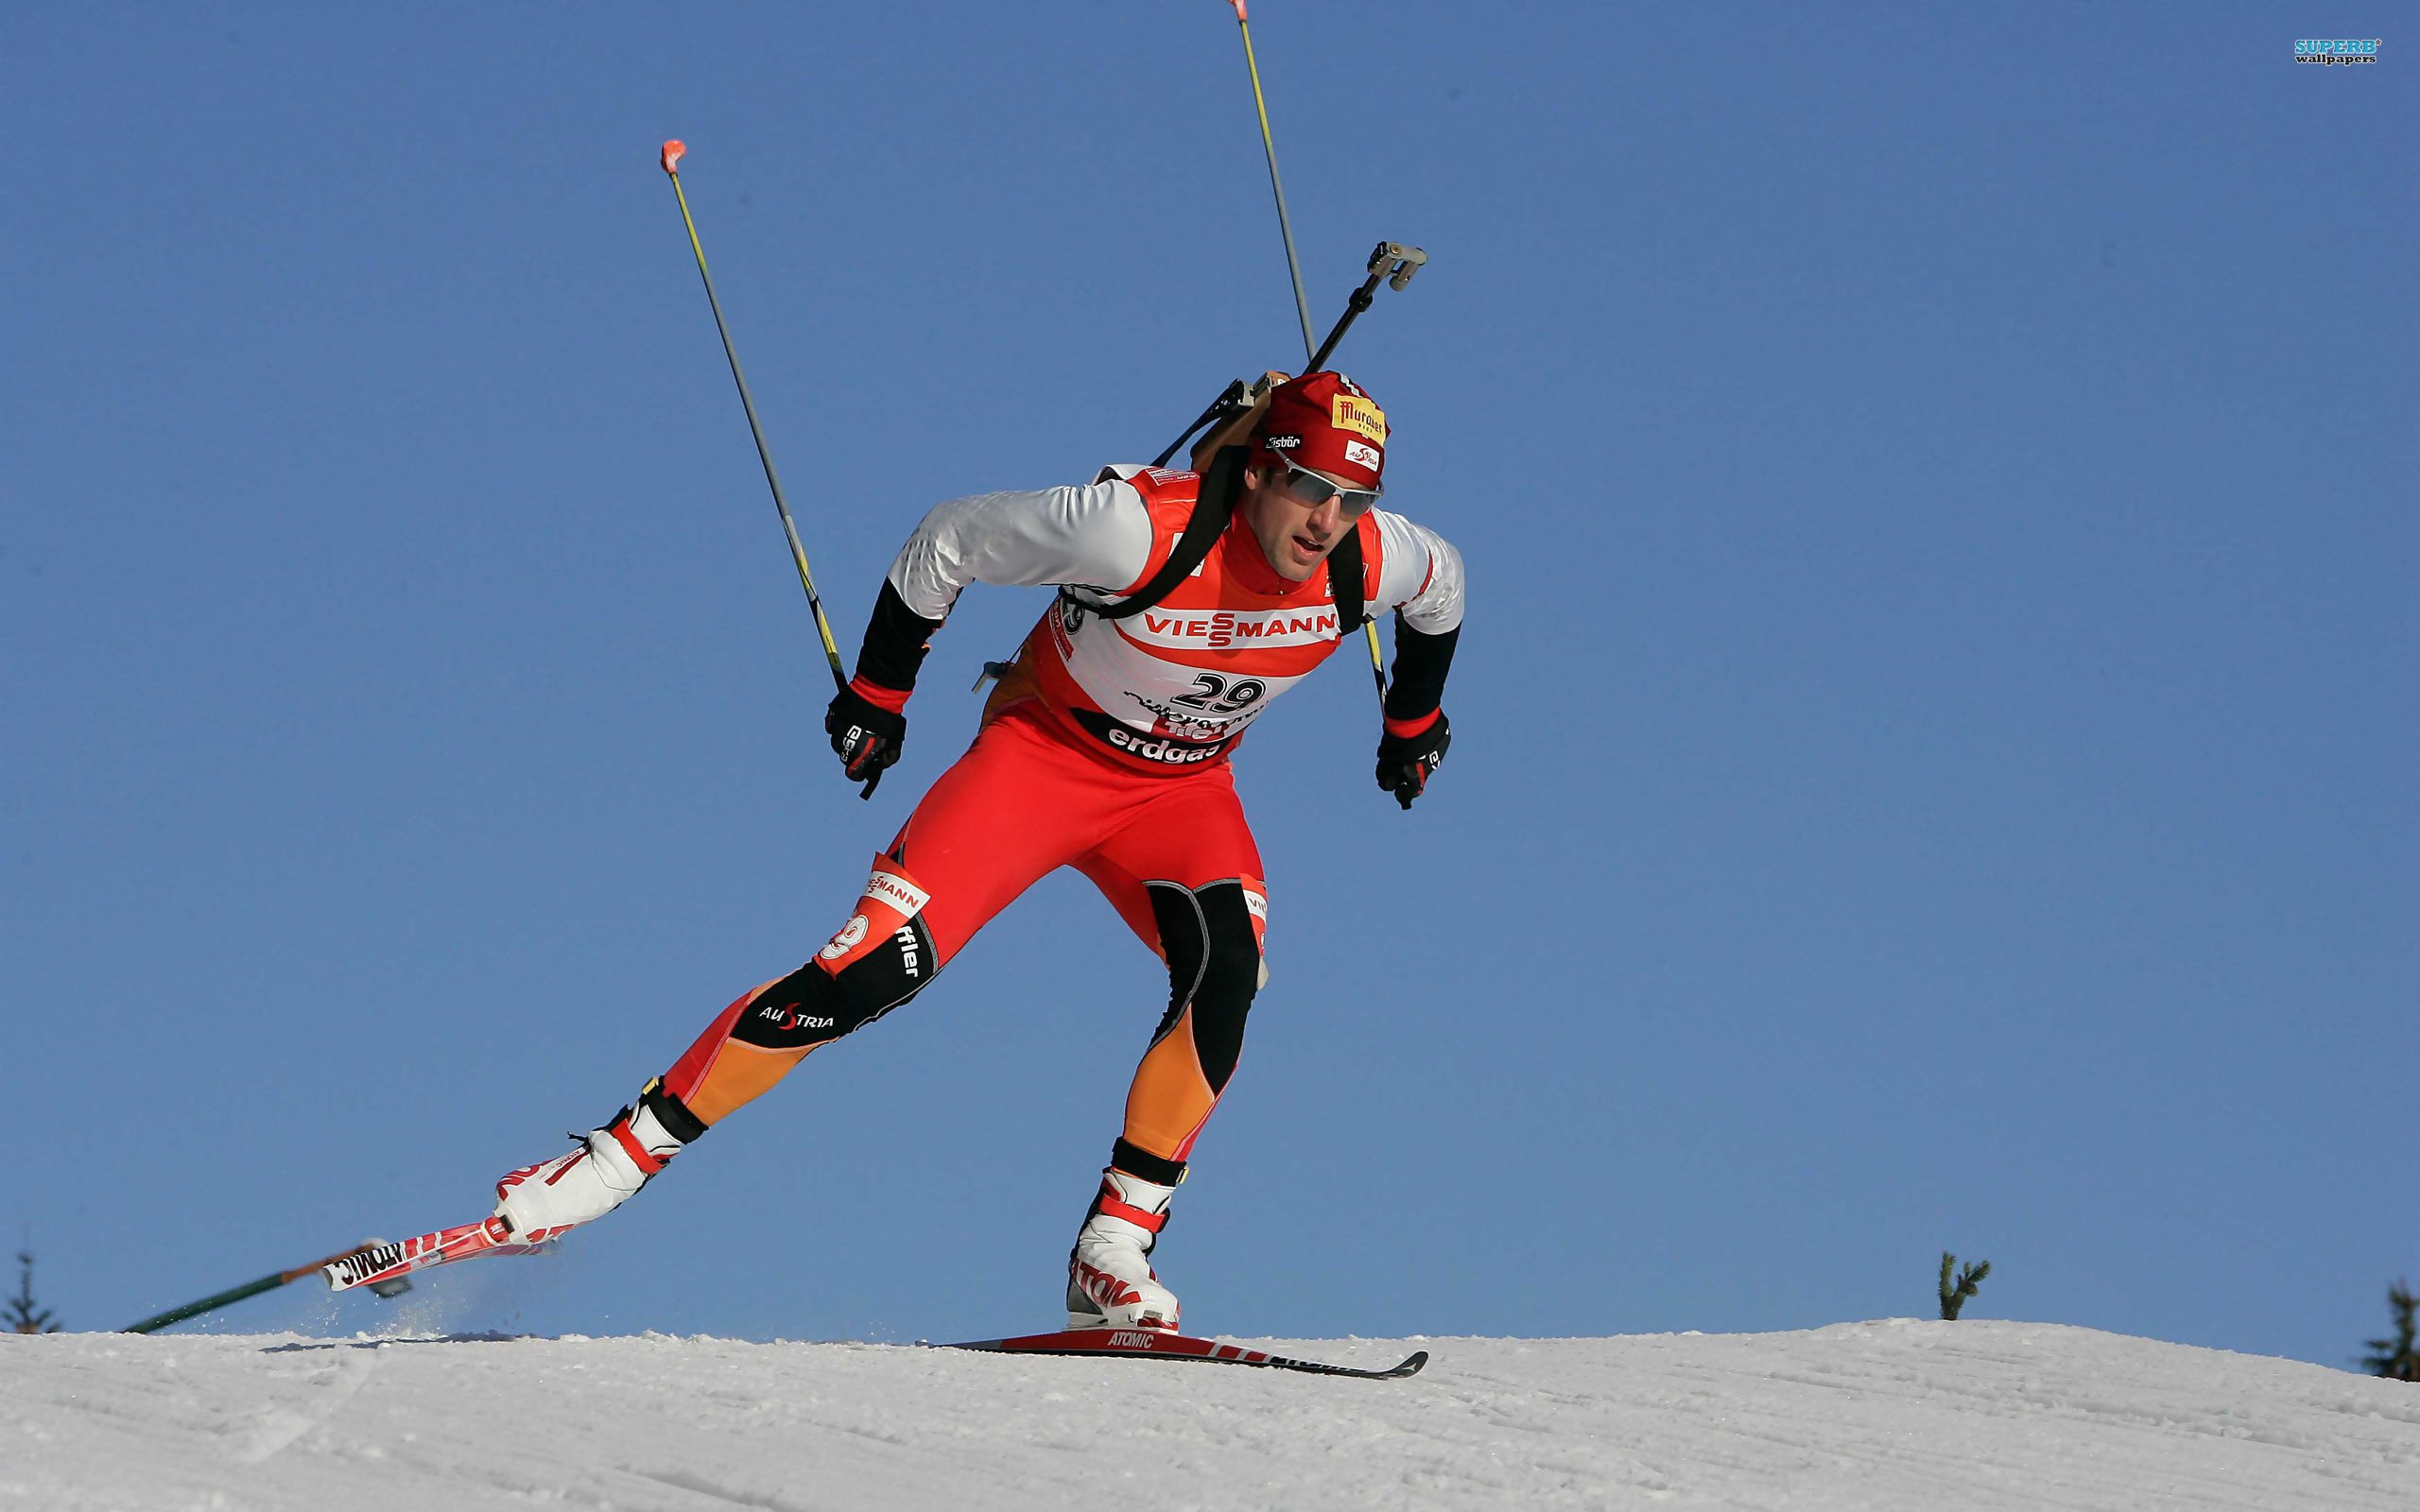 Biathlon Wallpaper 15   2560 X 1600 stmednet 2560x1600